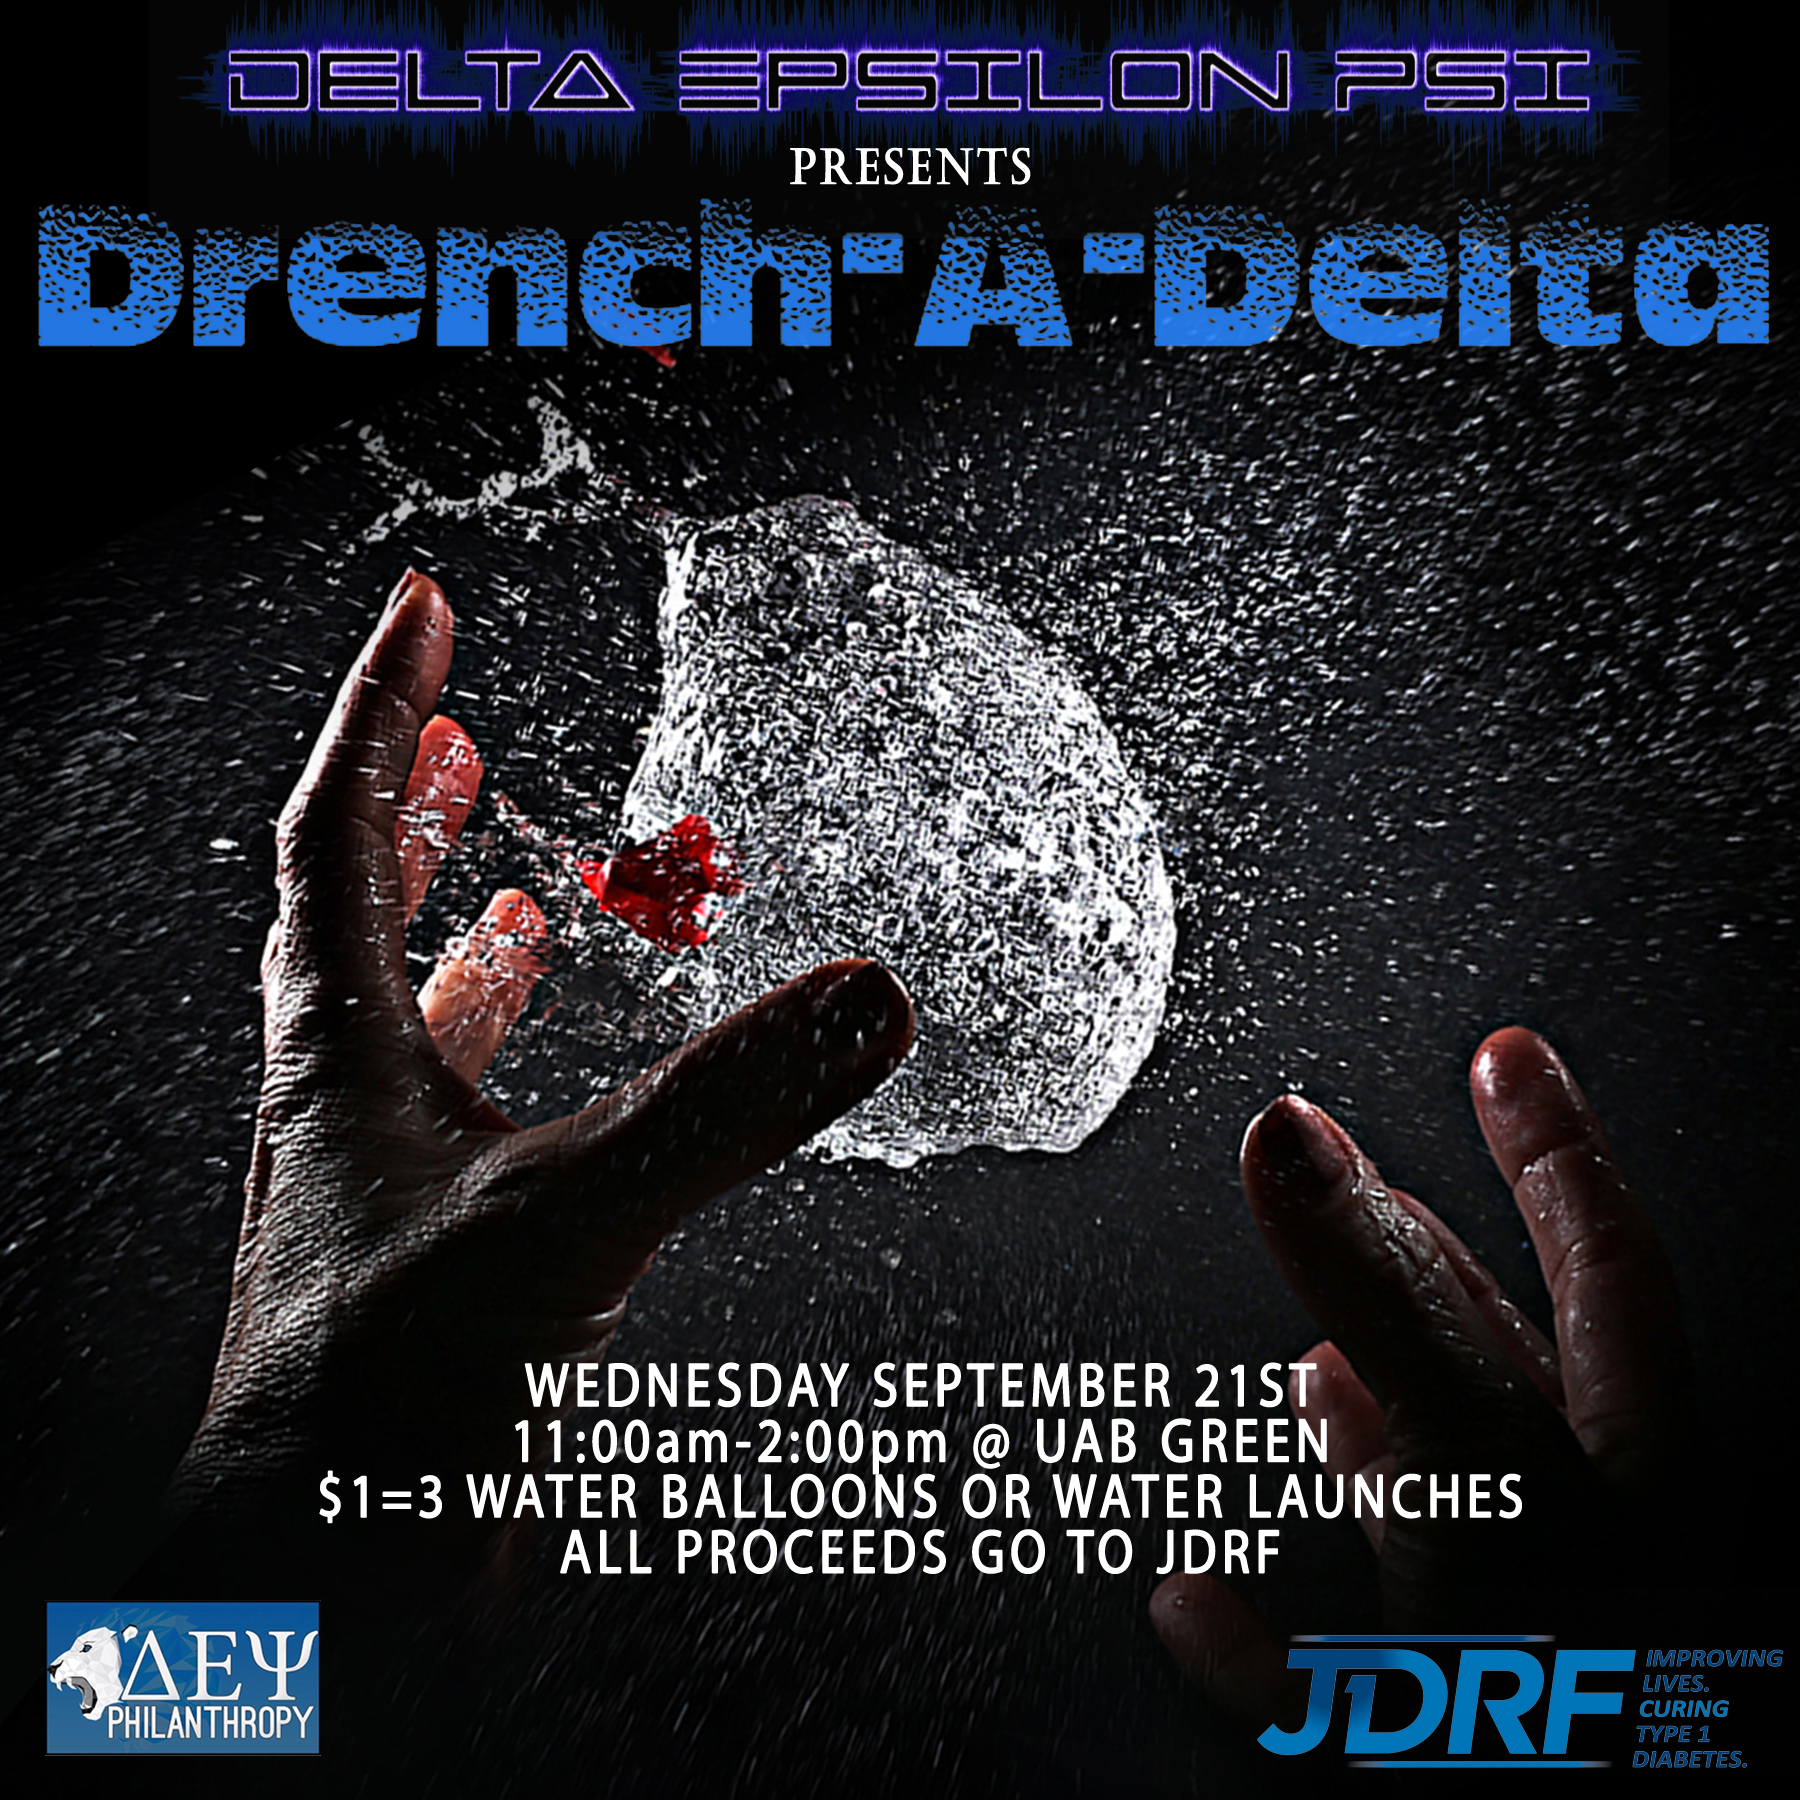 drench-a-delta-fall-2016